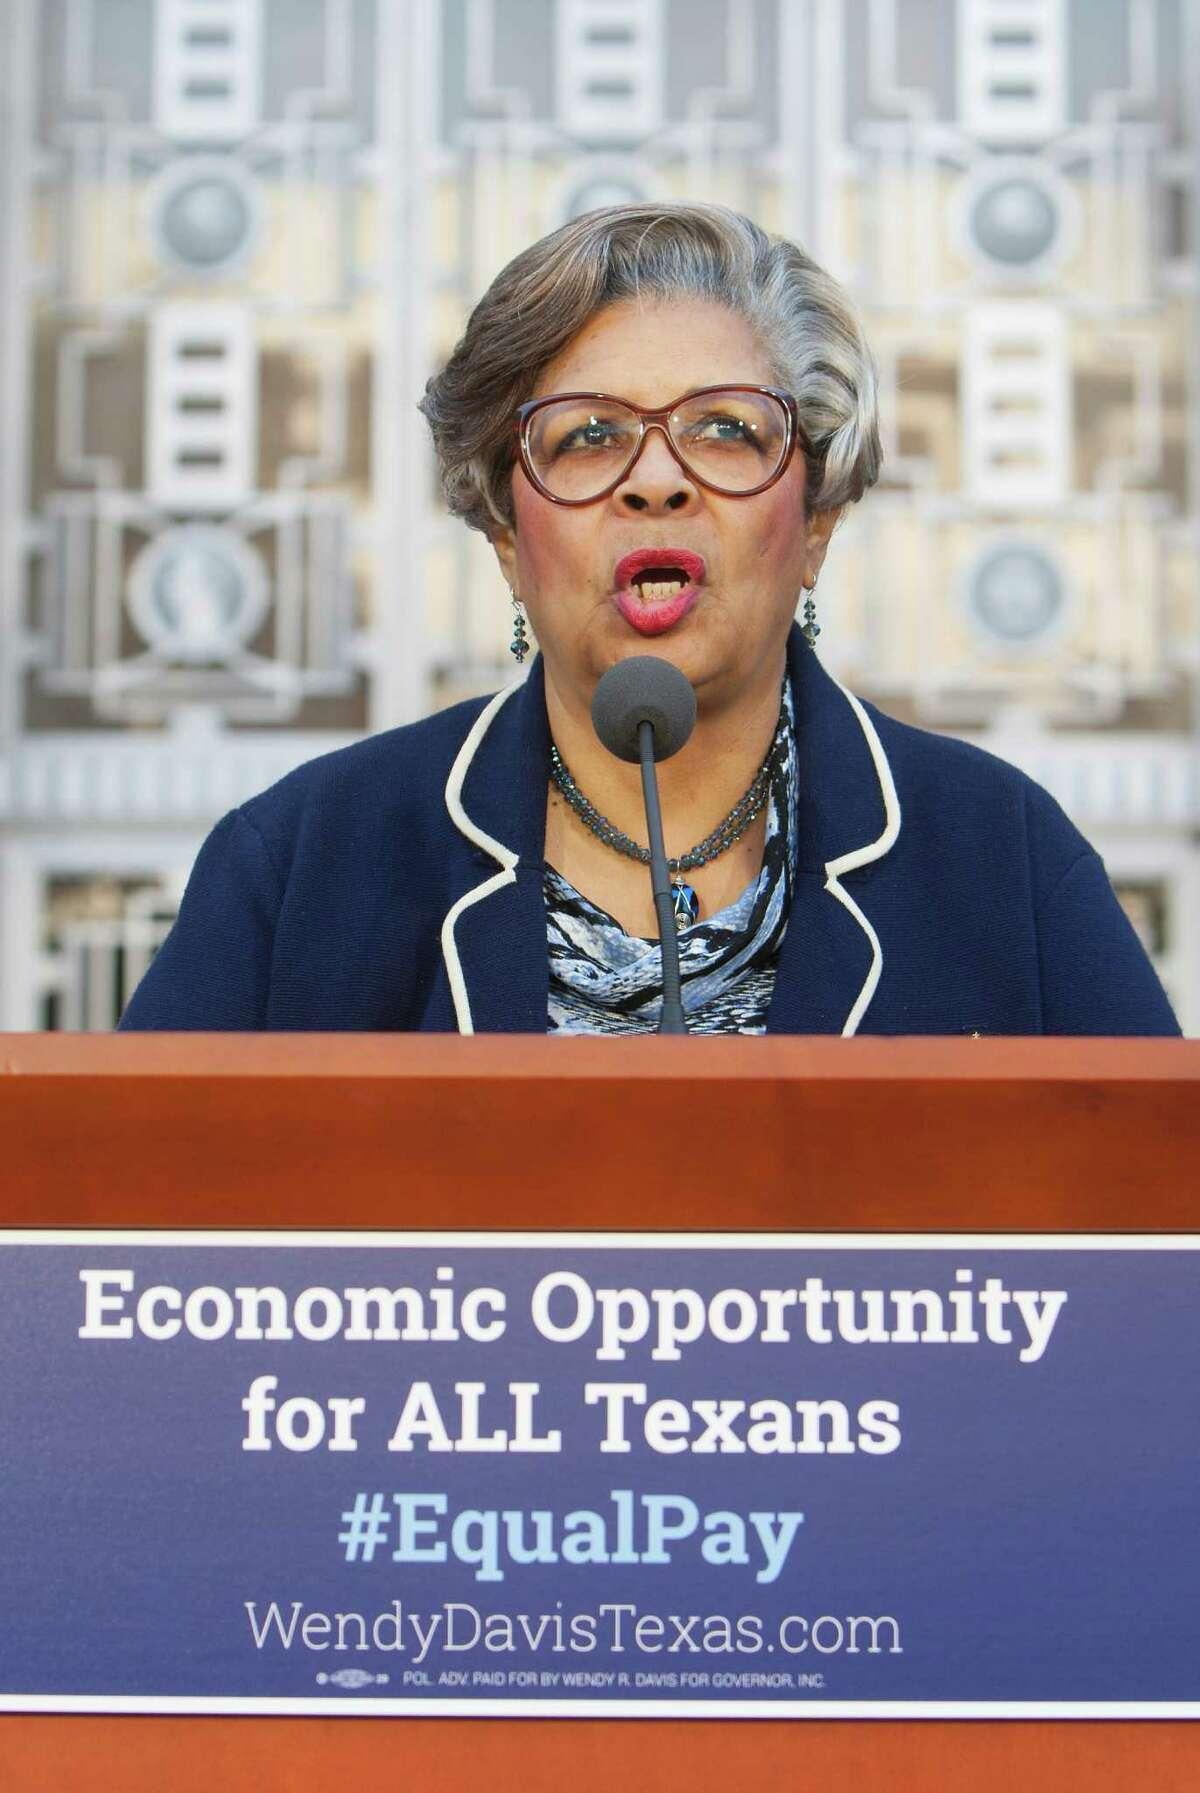 State Rep. Senfronia Thompson was the lead author of the Texas Pay Equal Act, which Sen. Wendy Davis sponsored in the Senate.